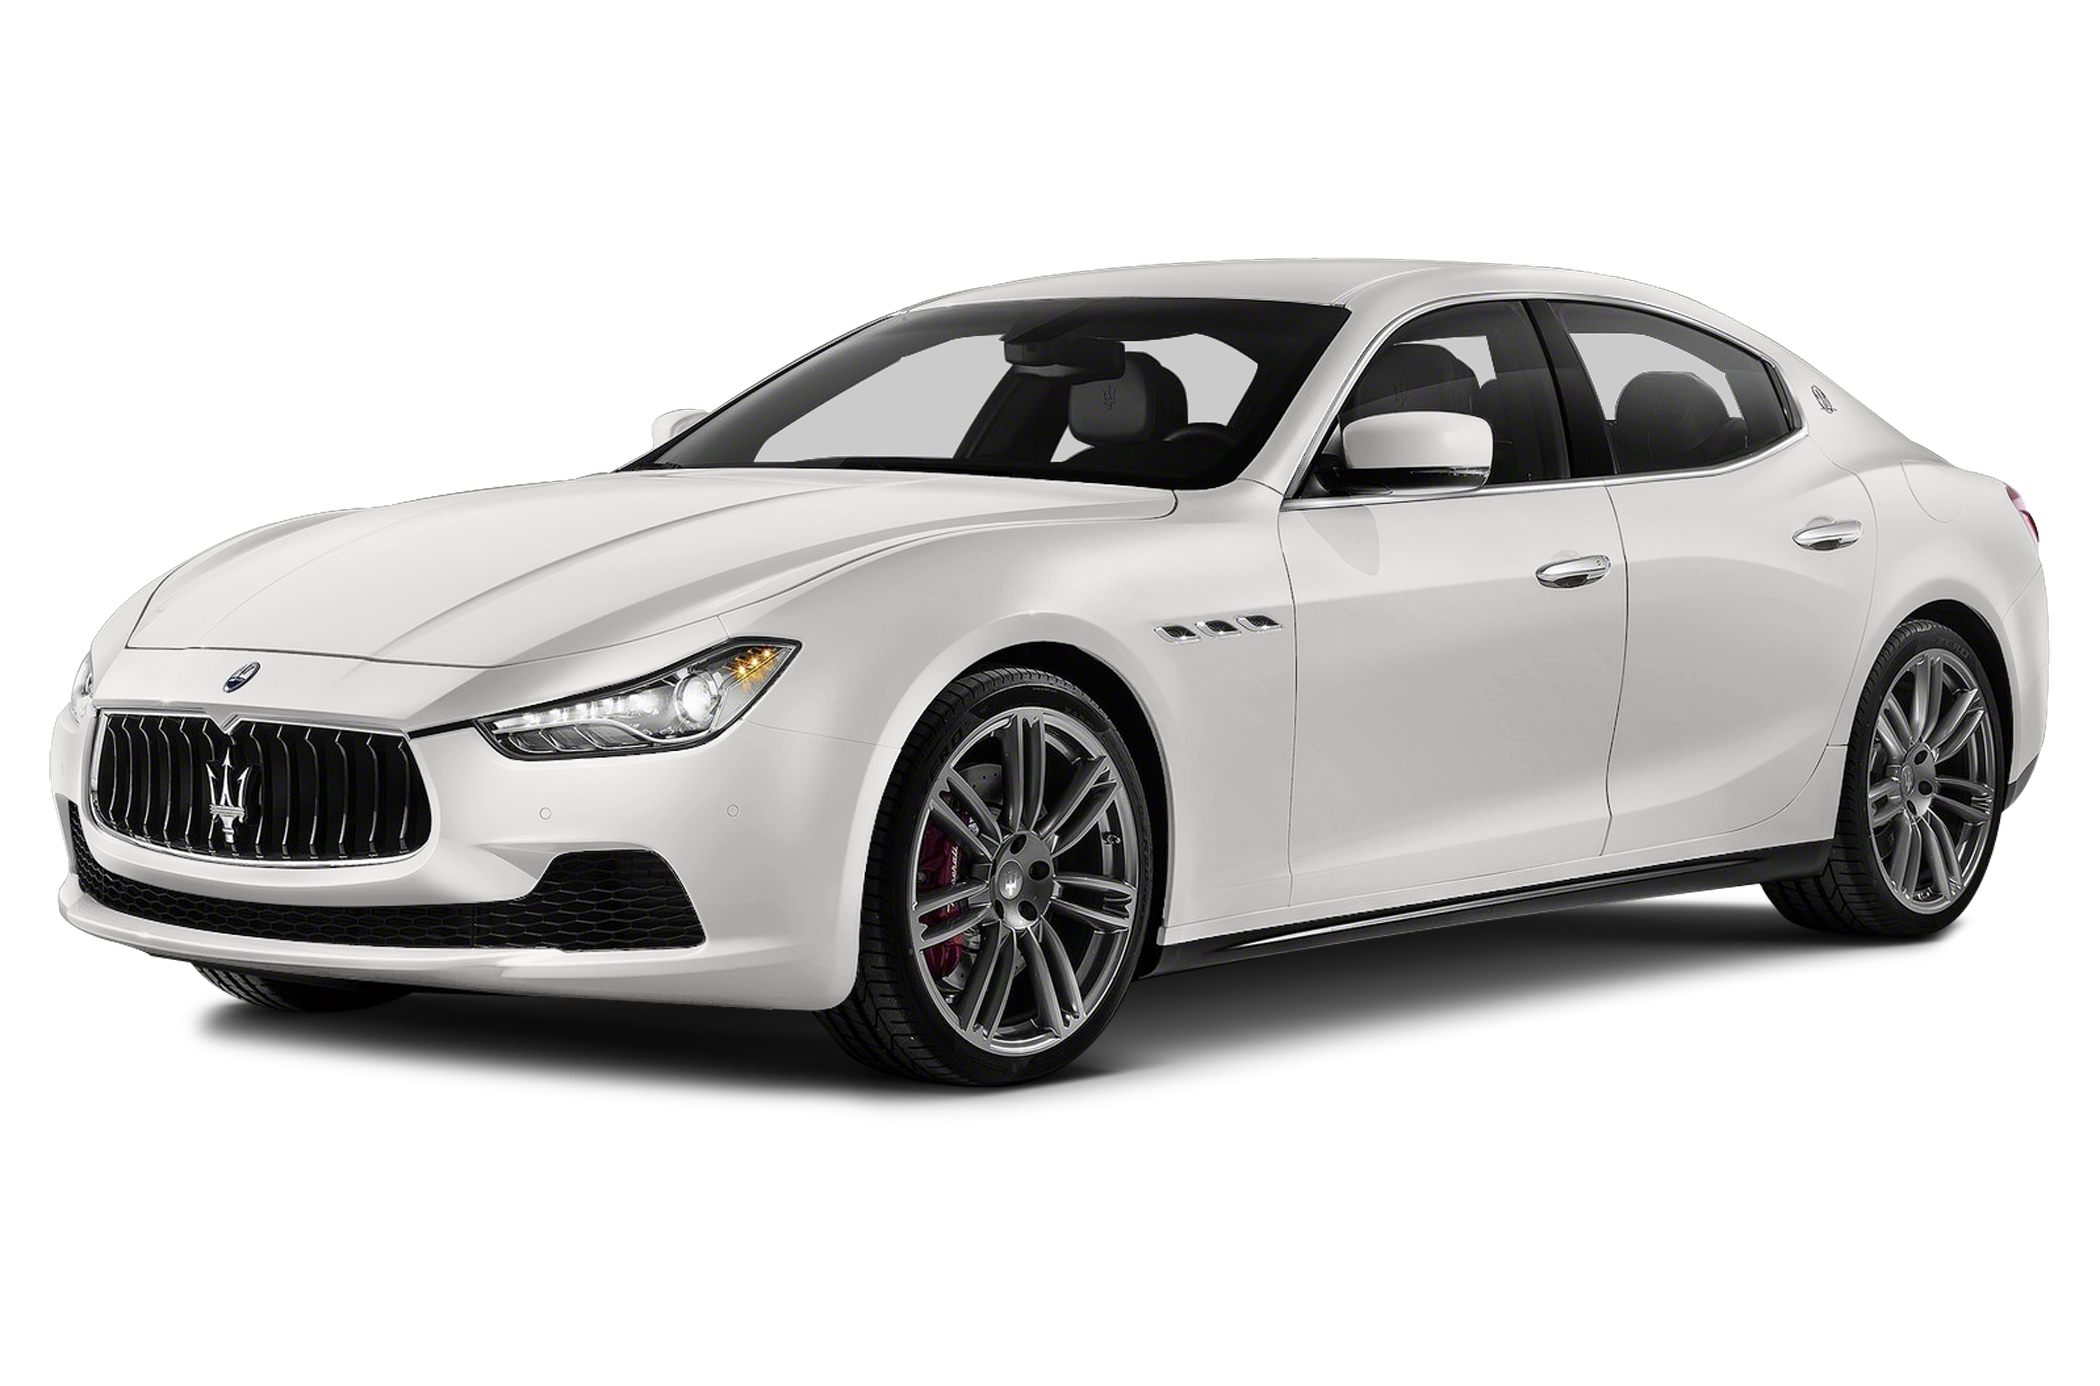 2015 Maserati Ghibli S Q4 Sedan for sale in Baltimore for $83,850 with 34 miles